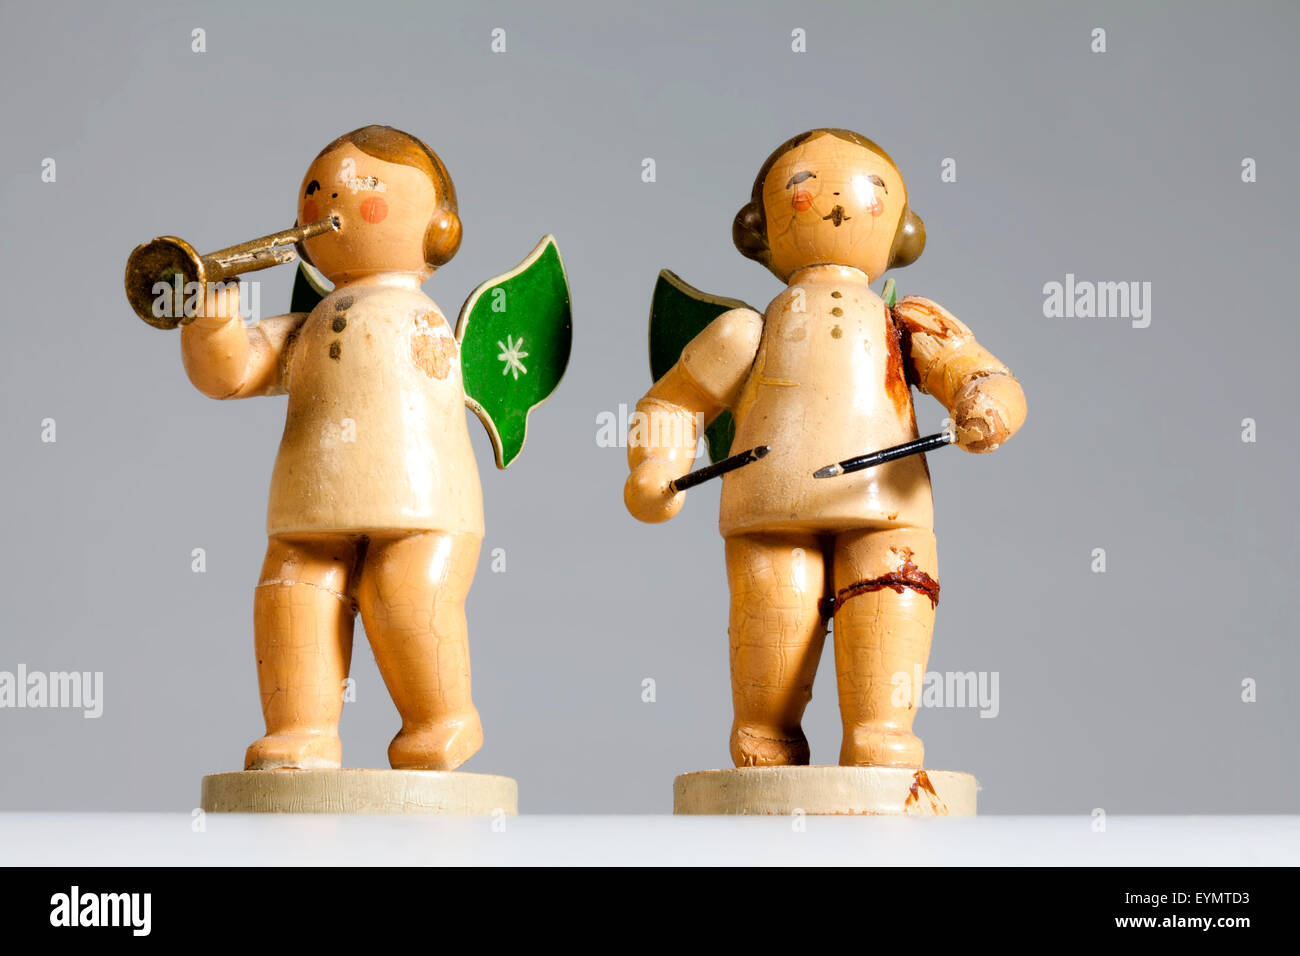 Broken wooden angels playing musical instruments, from the Erzgebirge, Germany, Europe, Kaputte  musizierende Engel - Stock Image